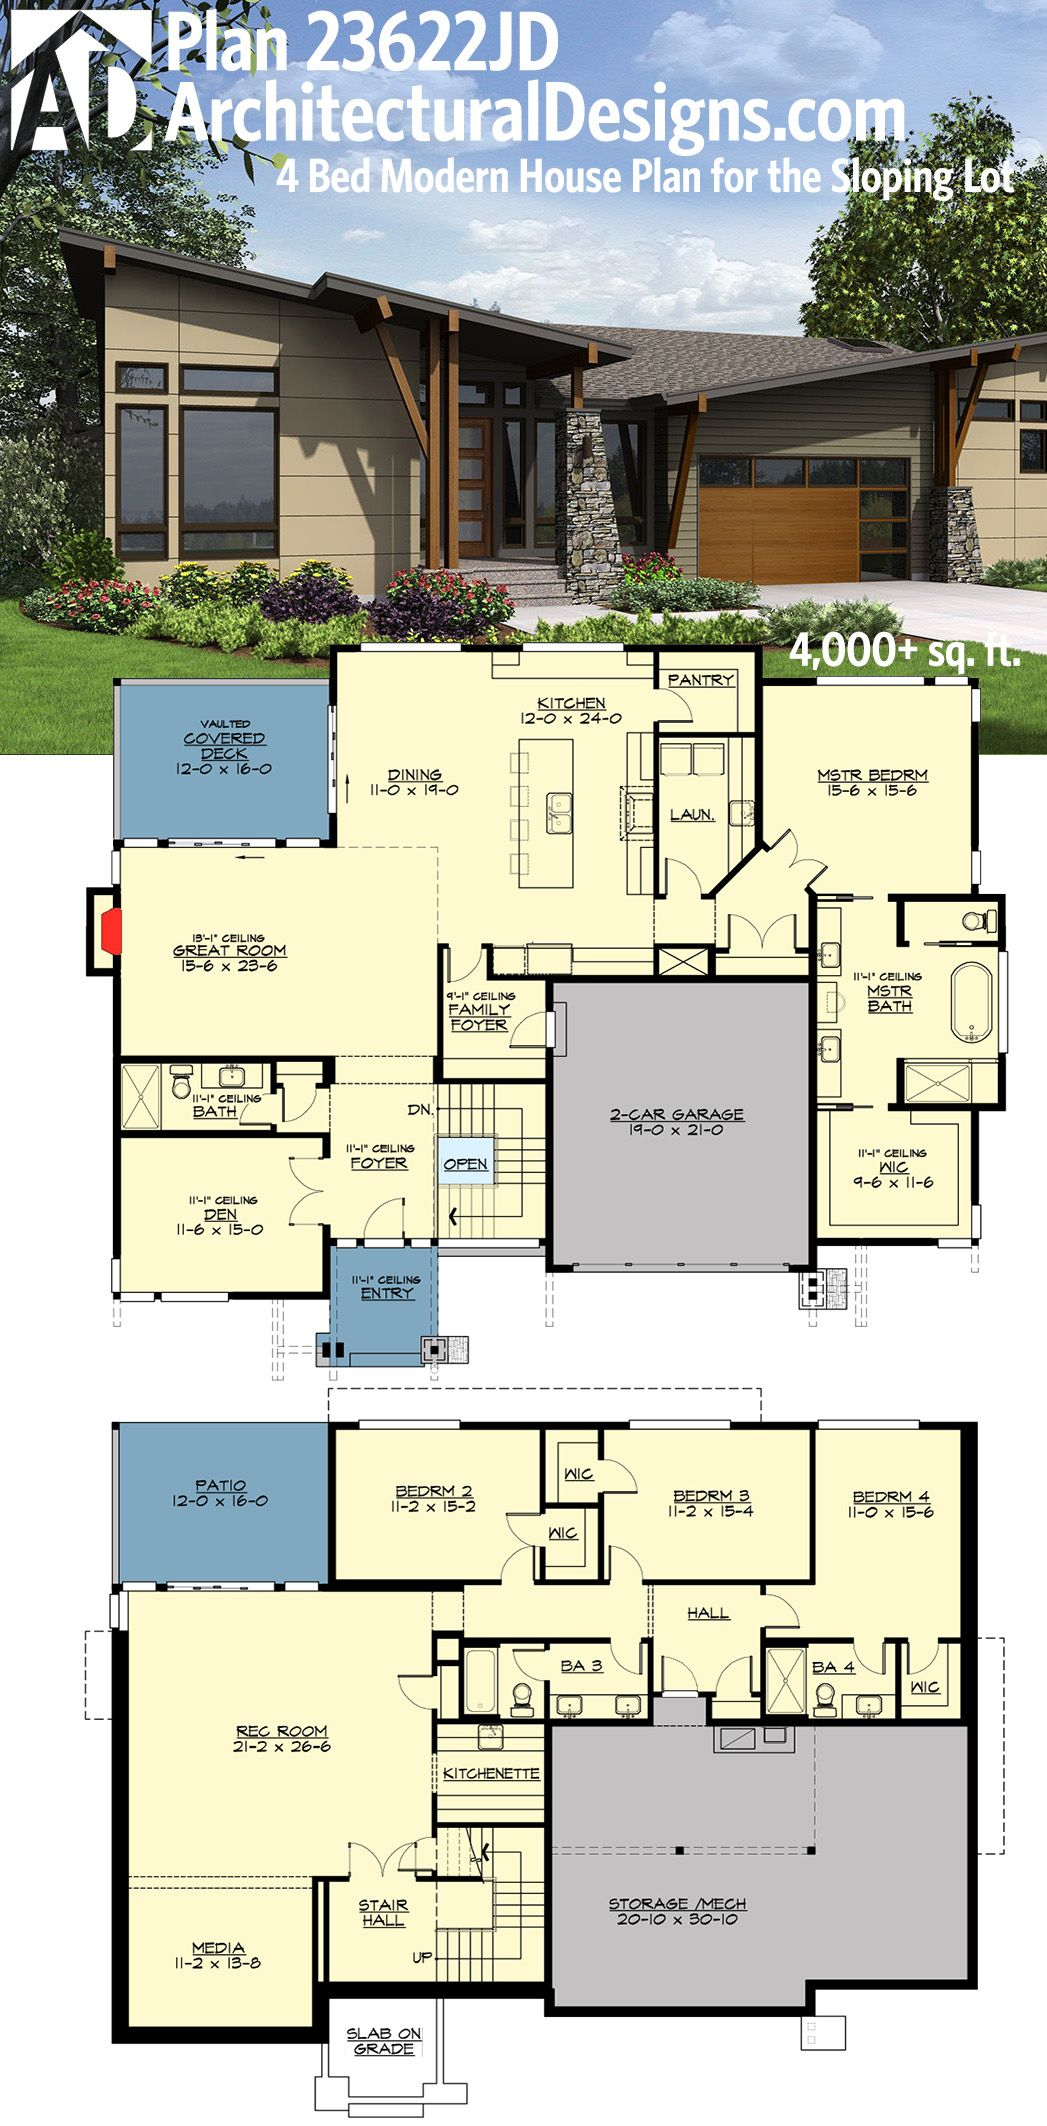 Perfect for your rear sloping lot architectural designs house plan 23622jd over 4000 sq ft with the finished walkout basement